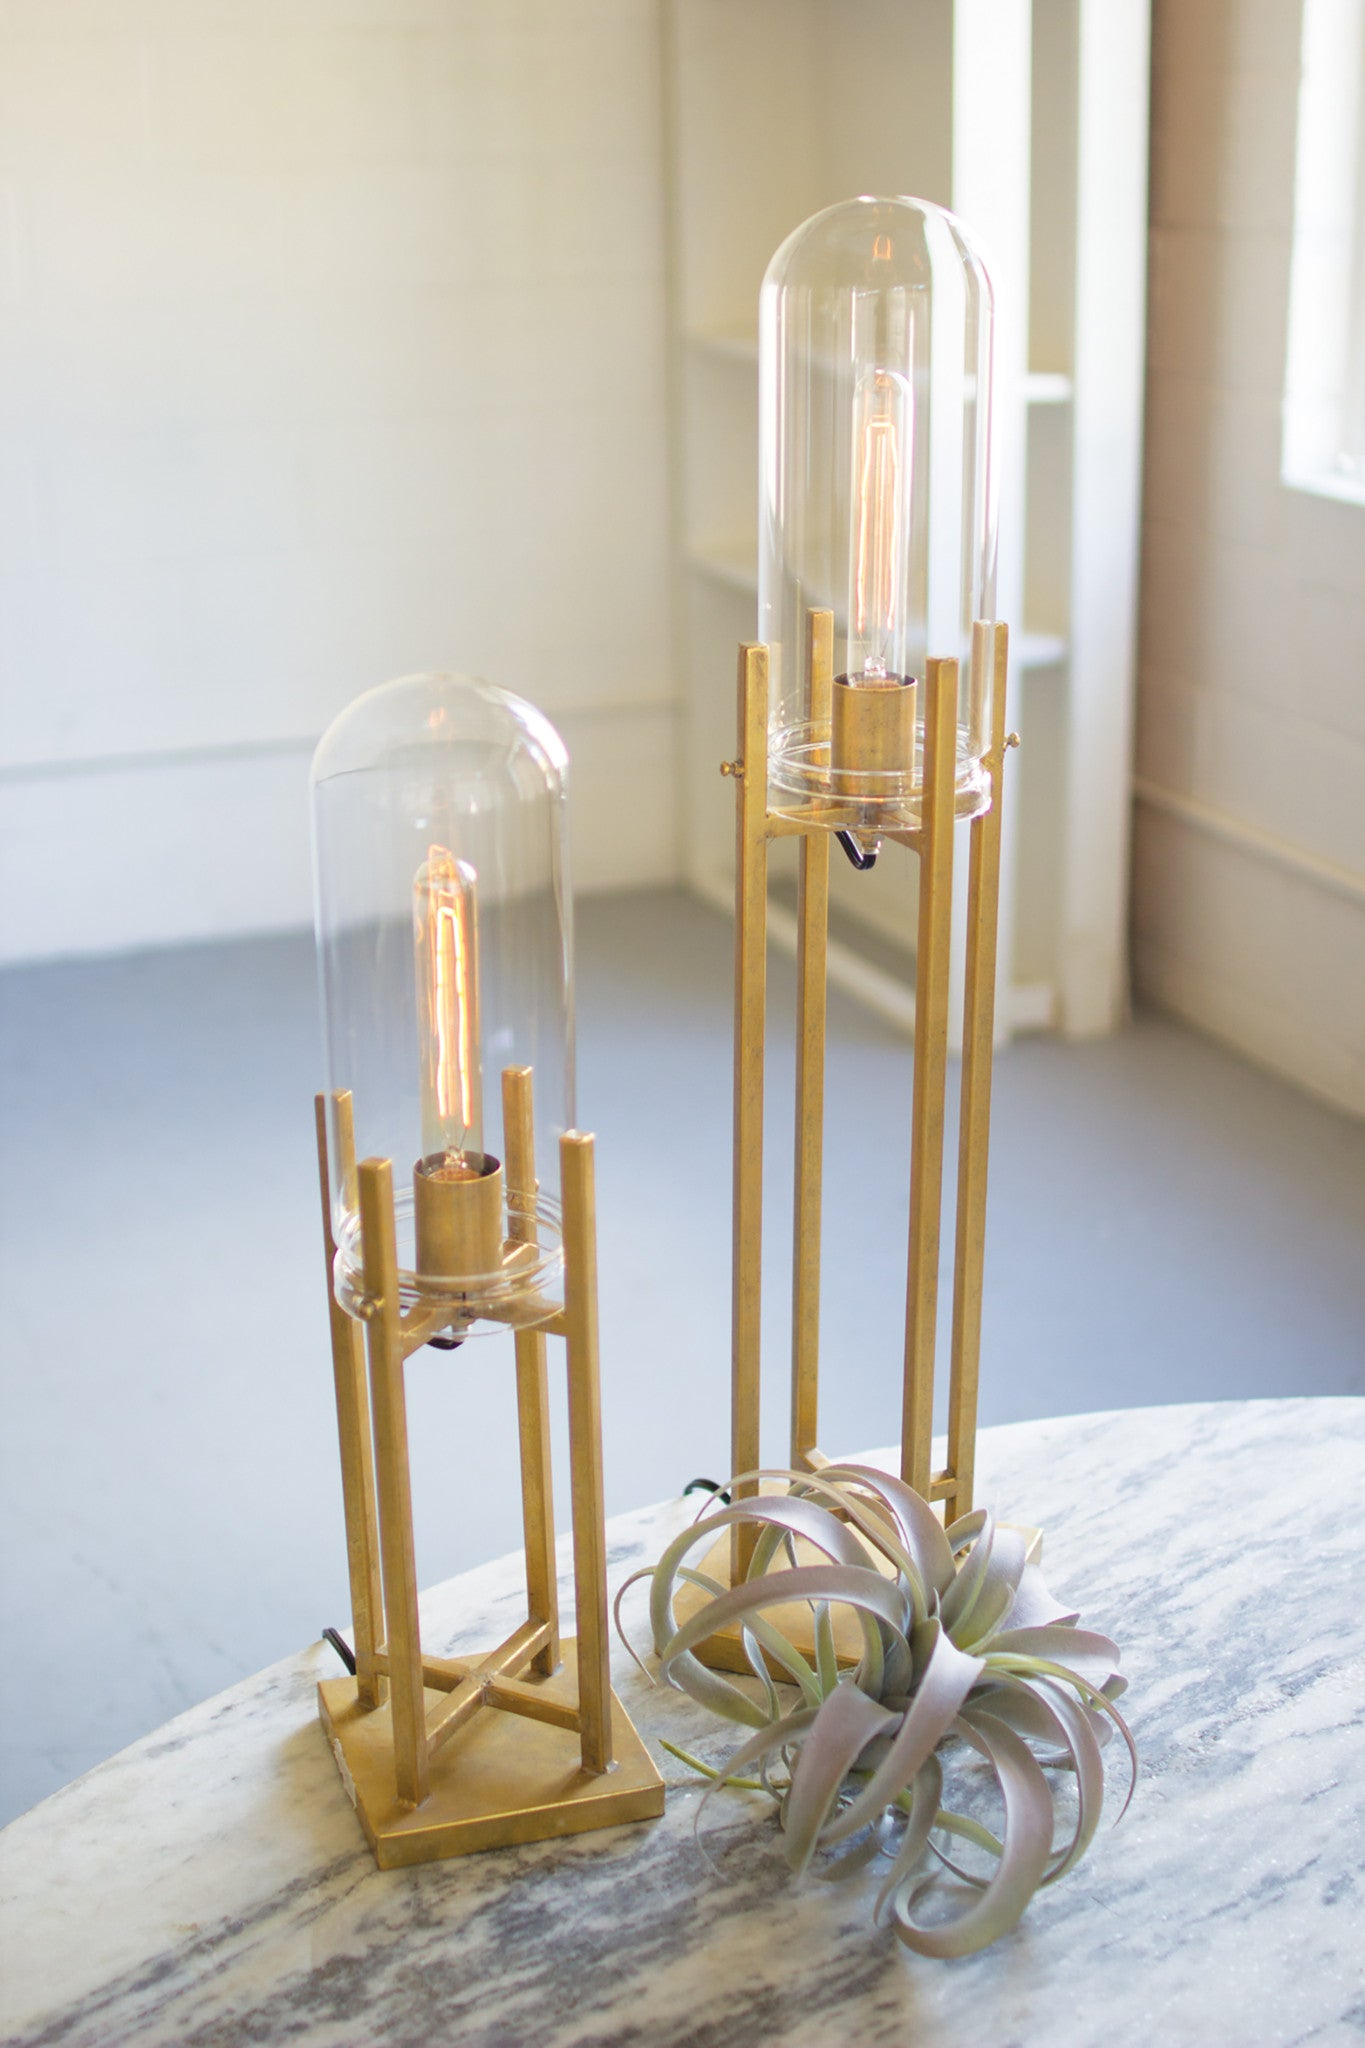 Brass and Gold Colored Furniture and Decor - Woodwaves